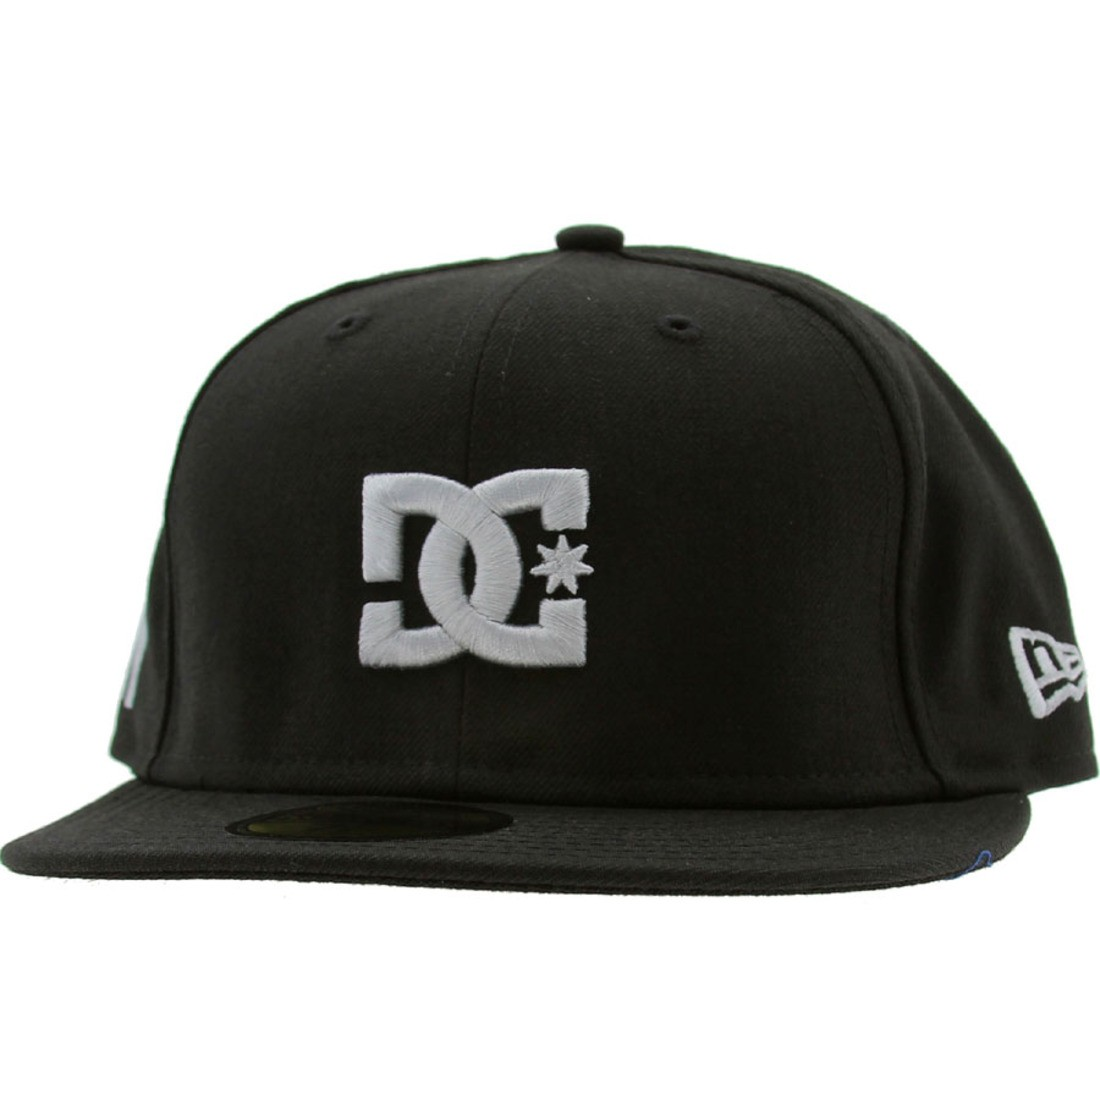 DC The Streets New Era Fitted Cap - New York (black) 3639f3229a7